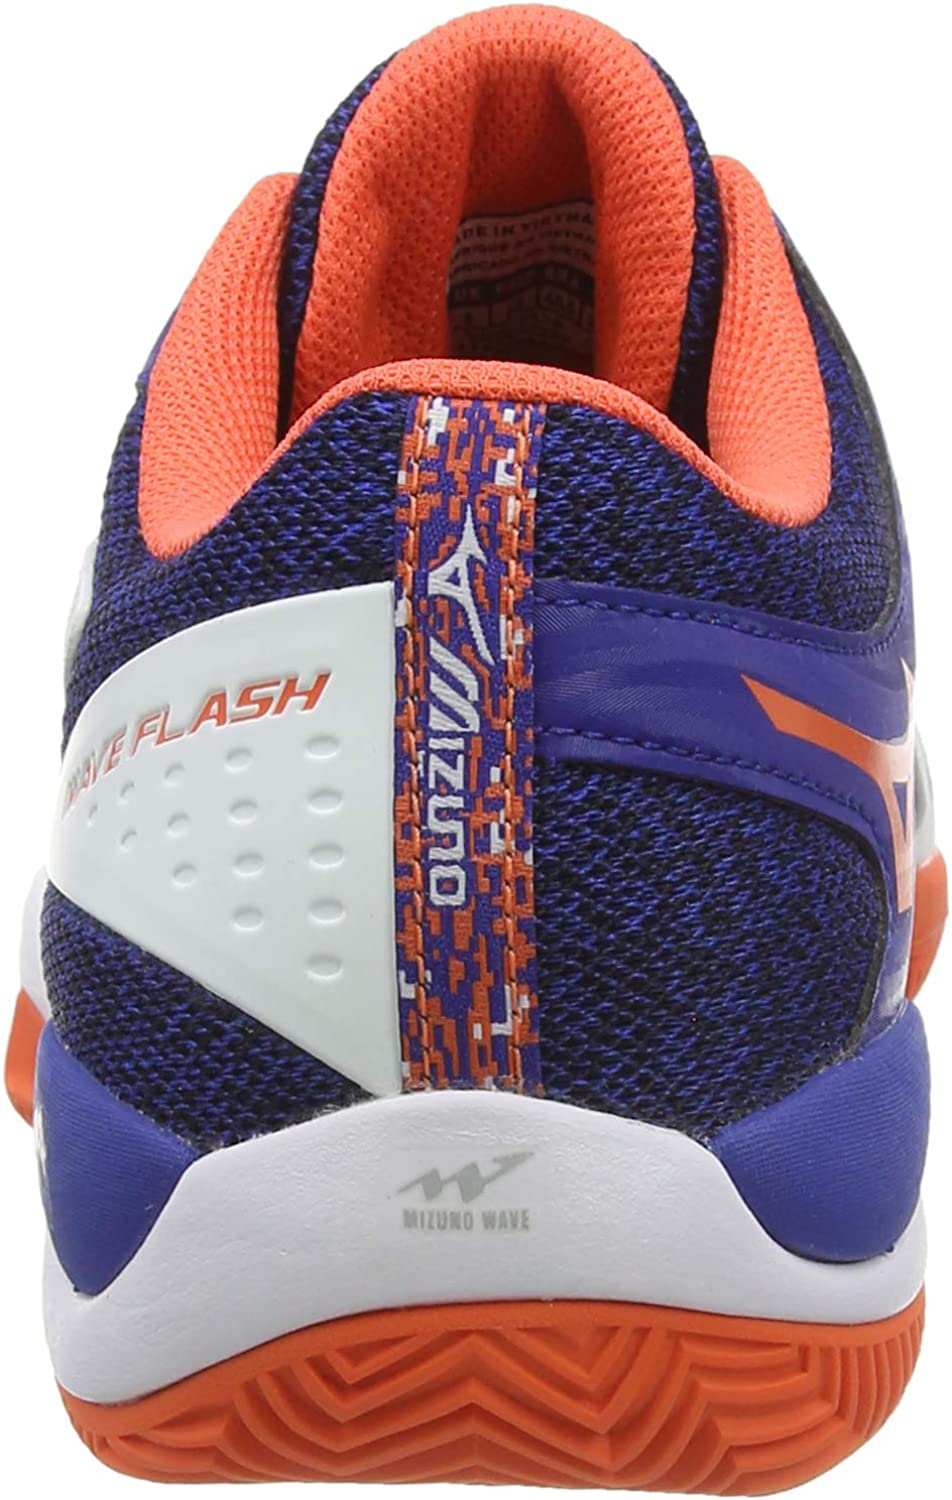 Mizuno Wave Flash CC Zapatillas de Tenis, Hombre: Amazon.es ...